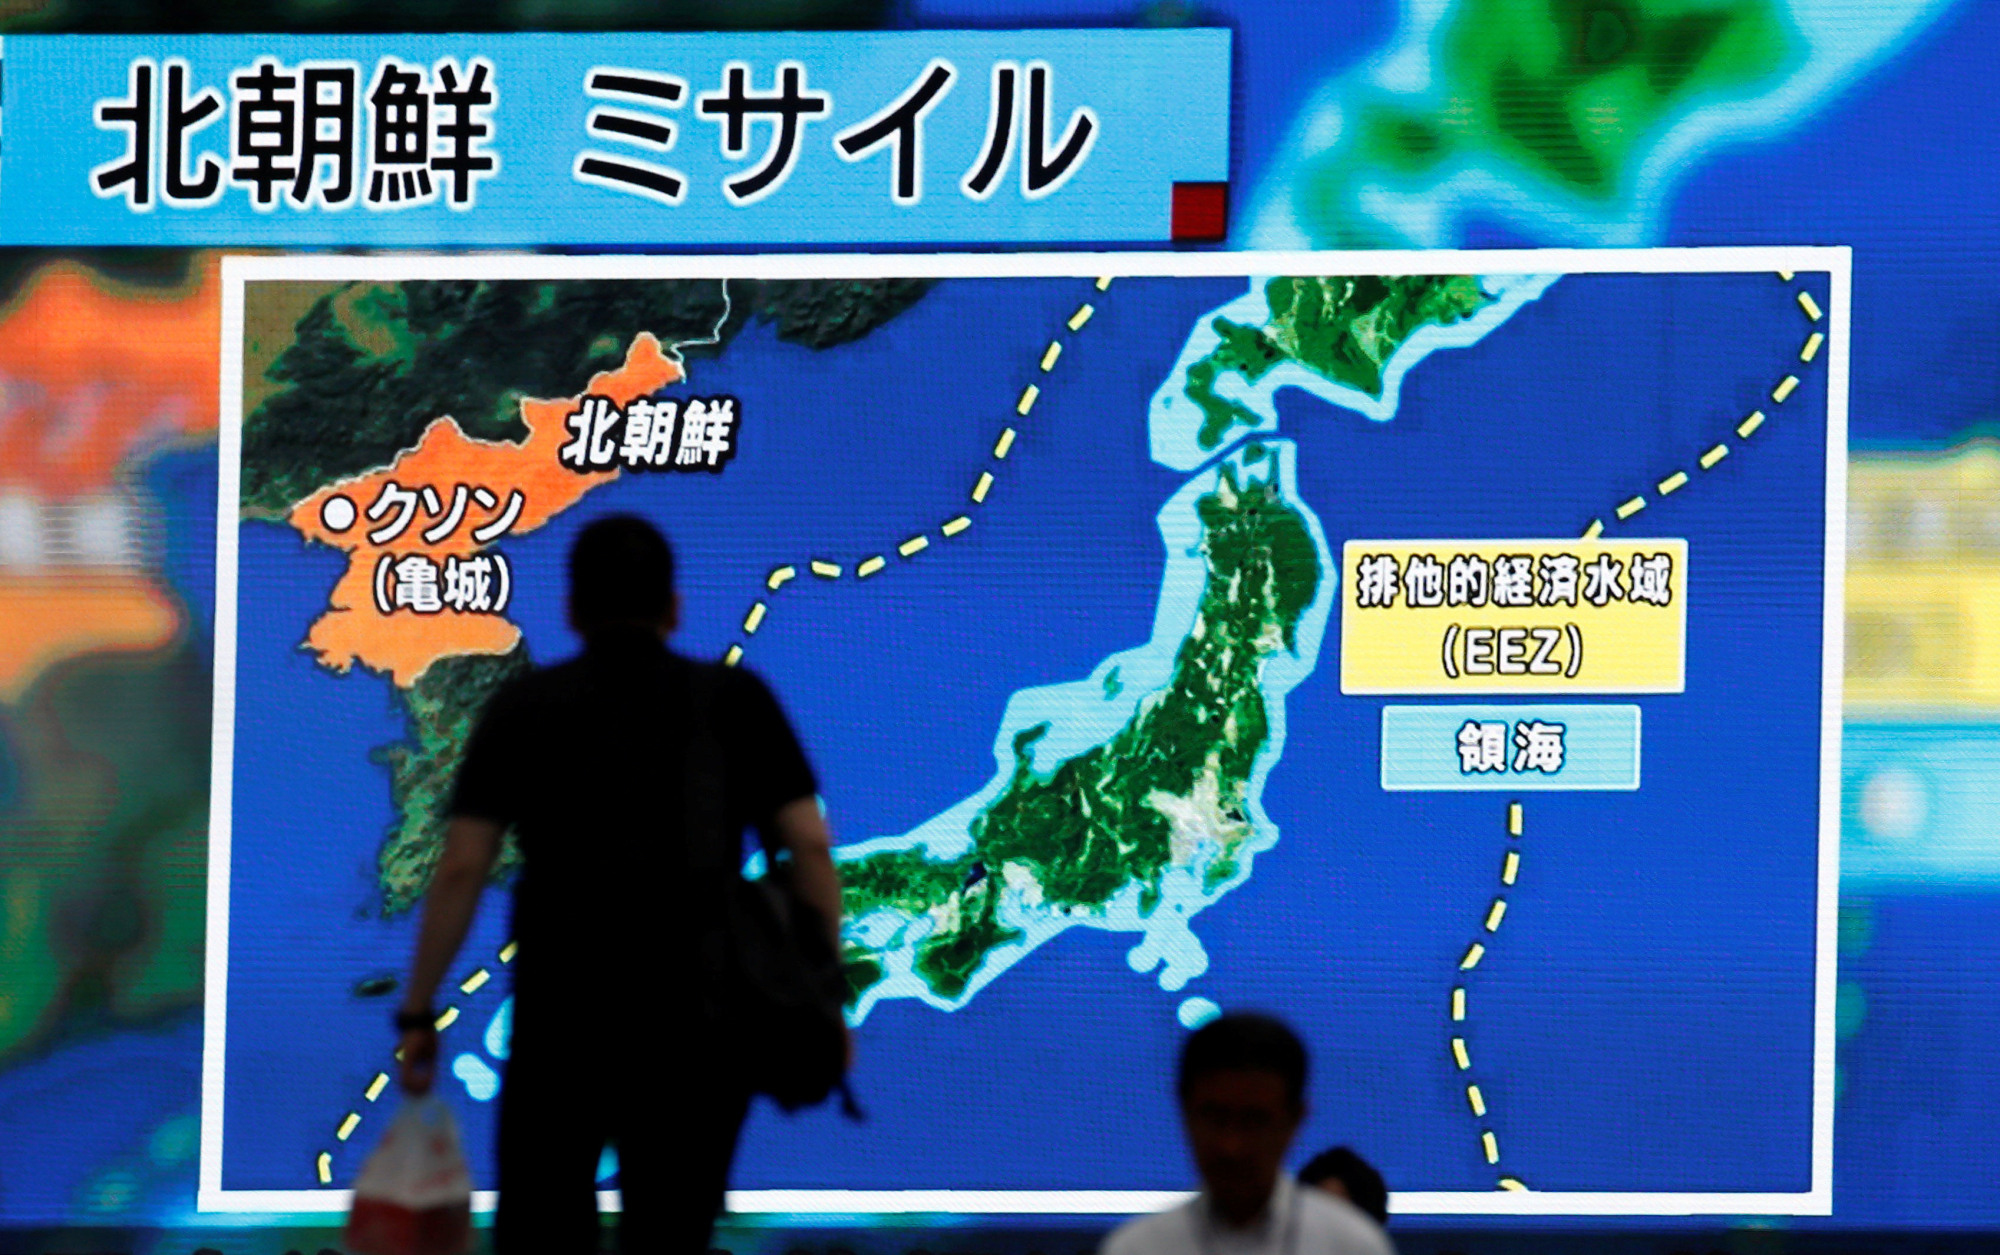 Passers-by in Tokyo on Tuesday look at a large monitor showing news of North Korea's intercontinental ballistic missile test. | REUTERS